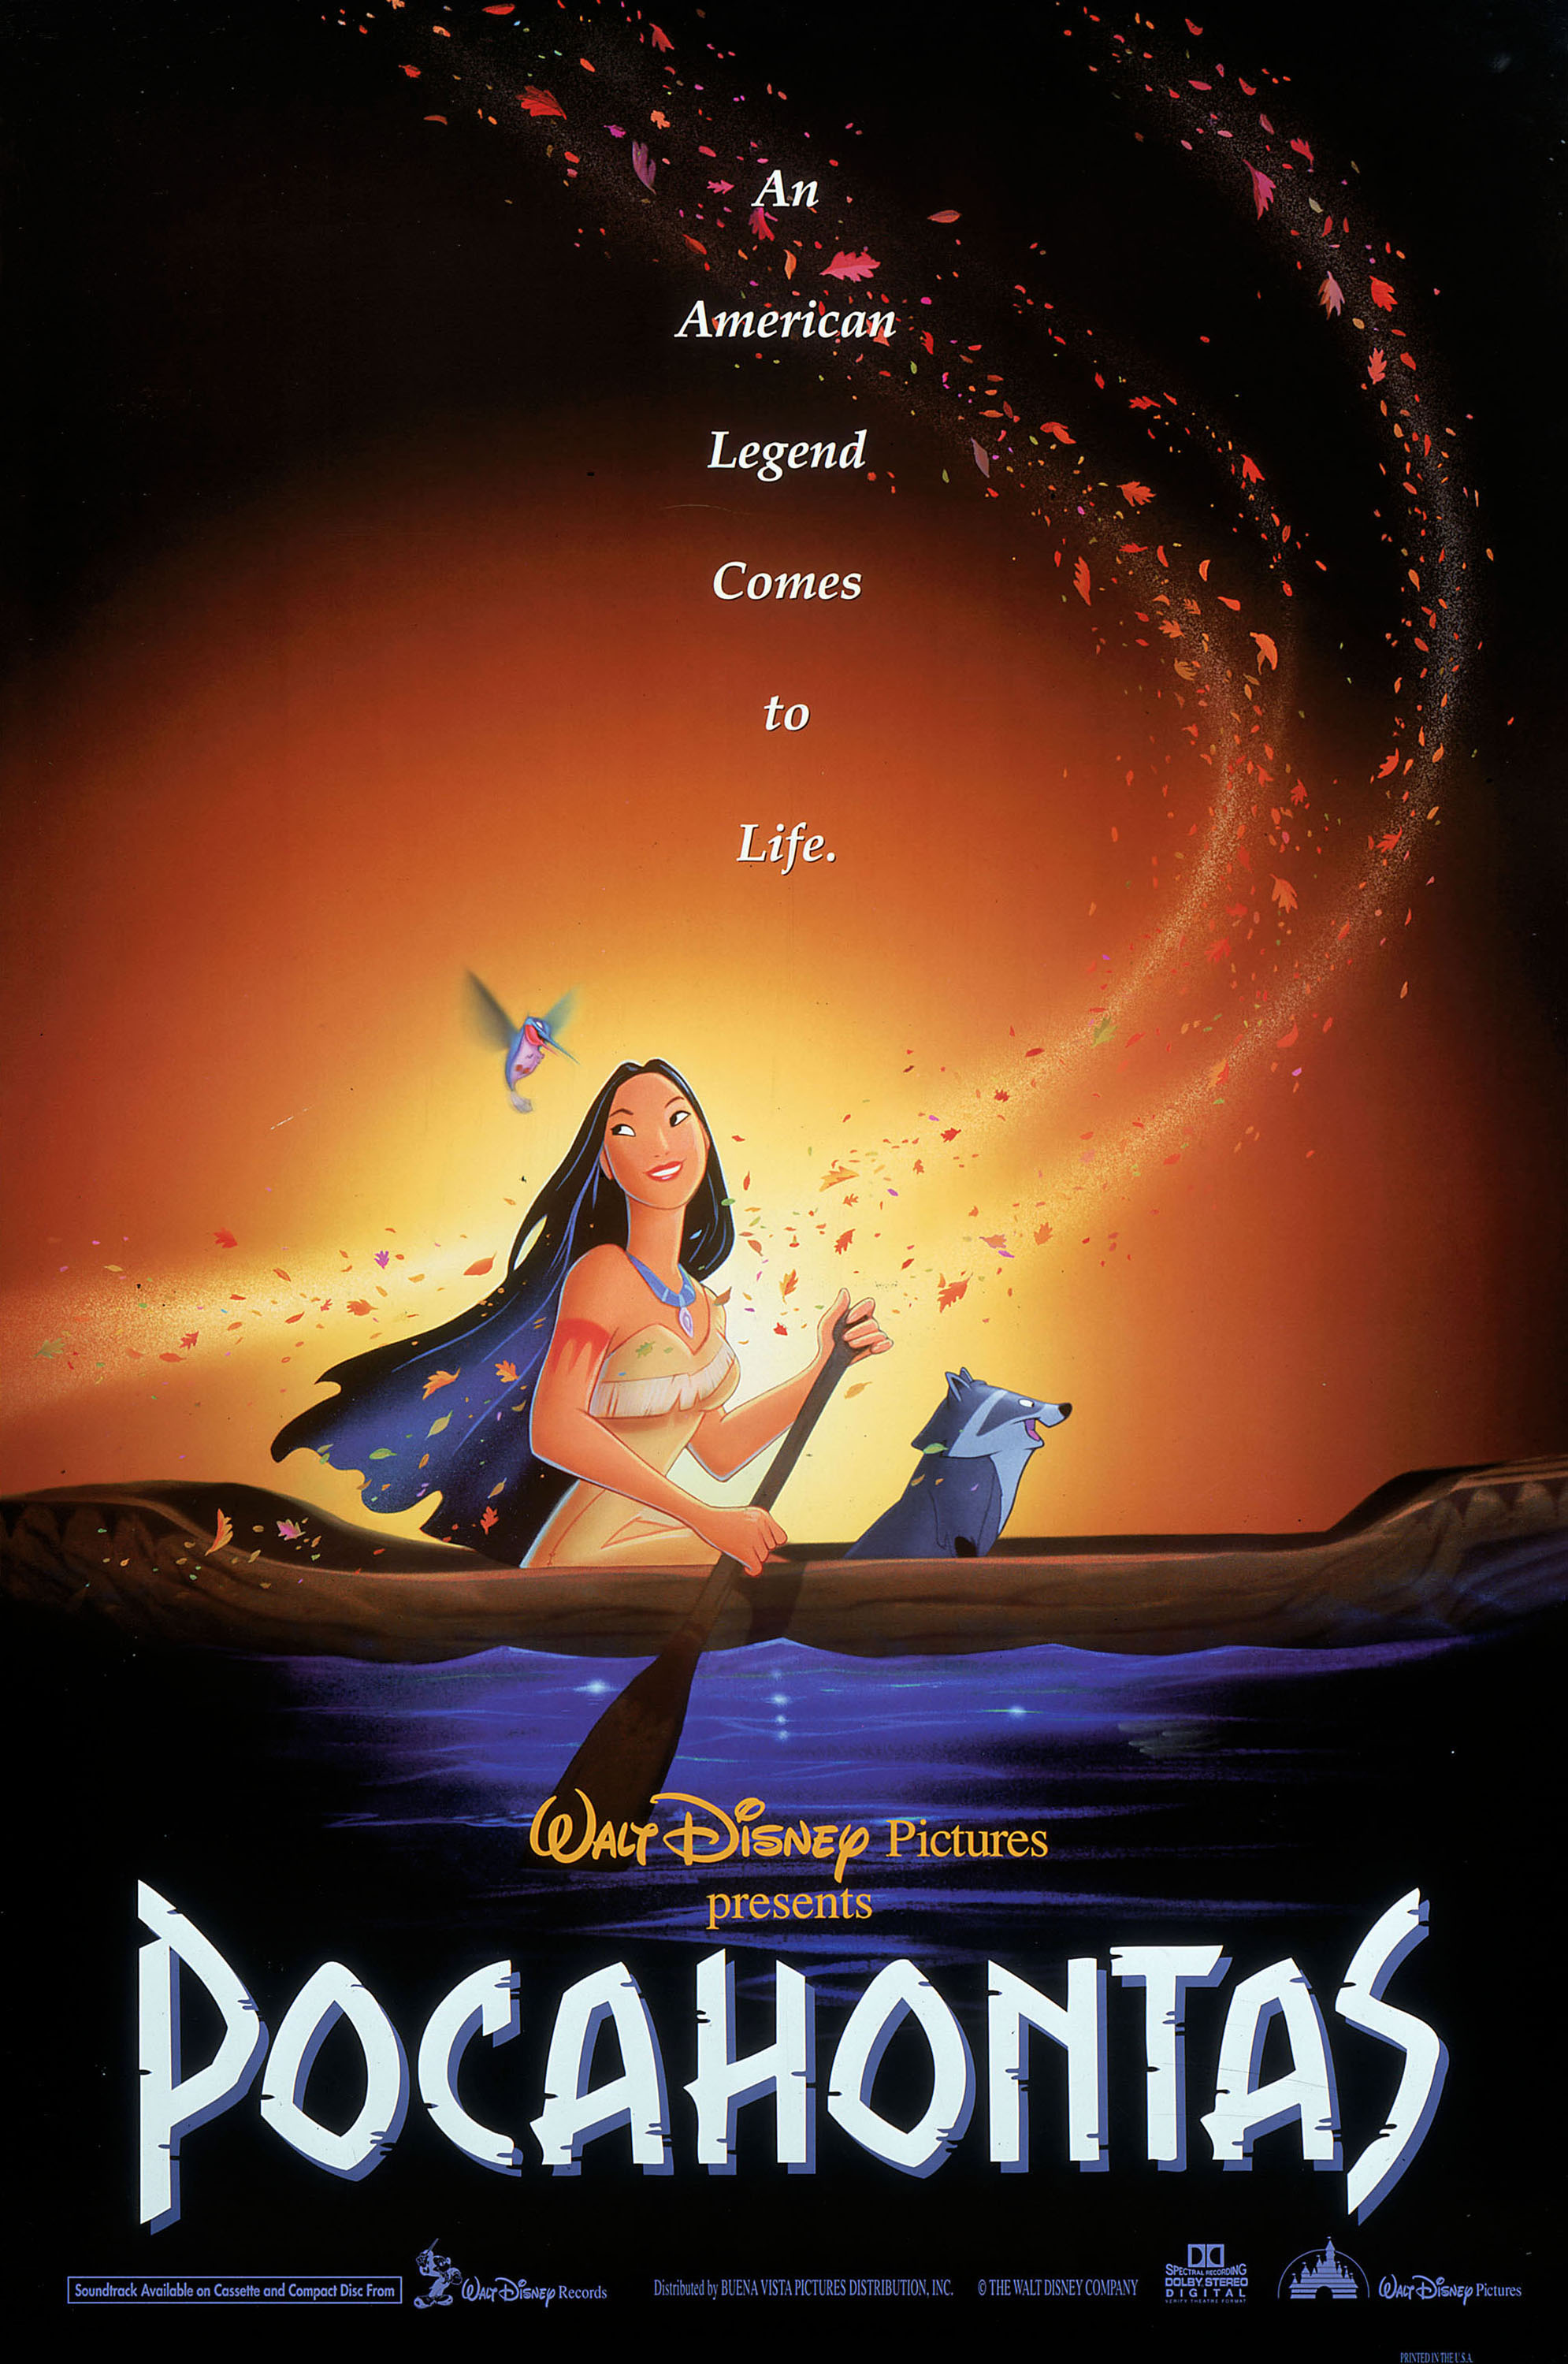 pocahontas film disney wiki fandom powered by wikia pocahontas film